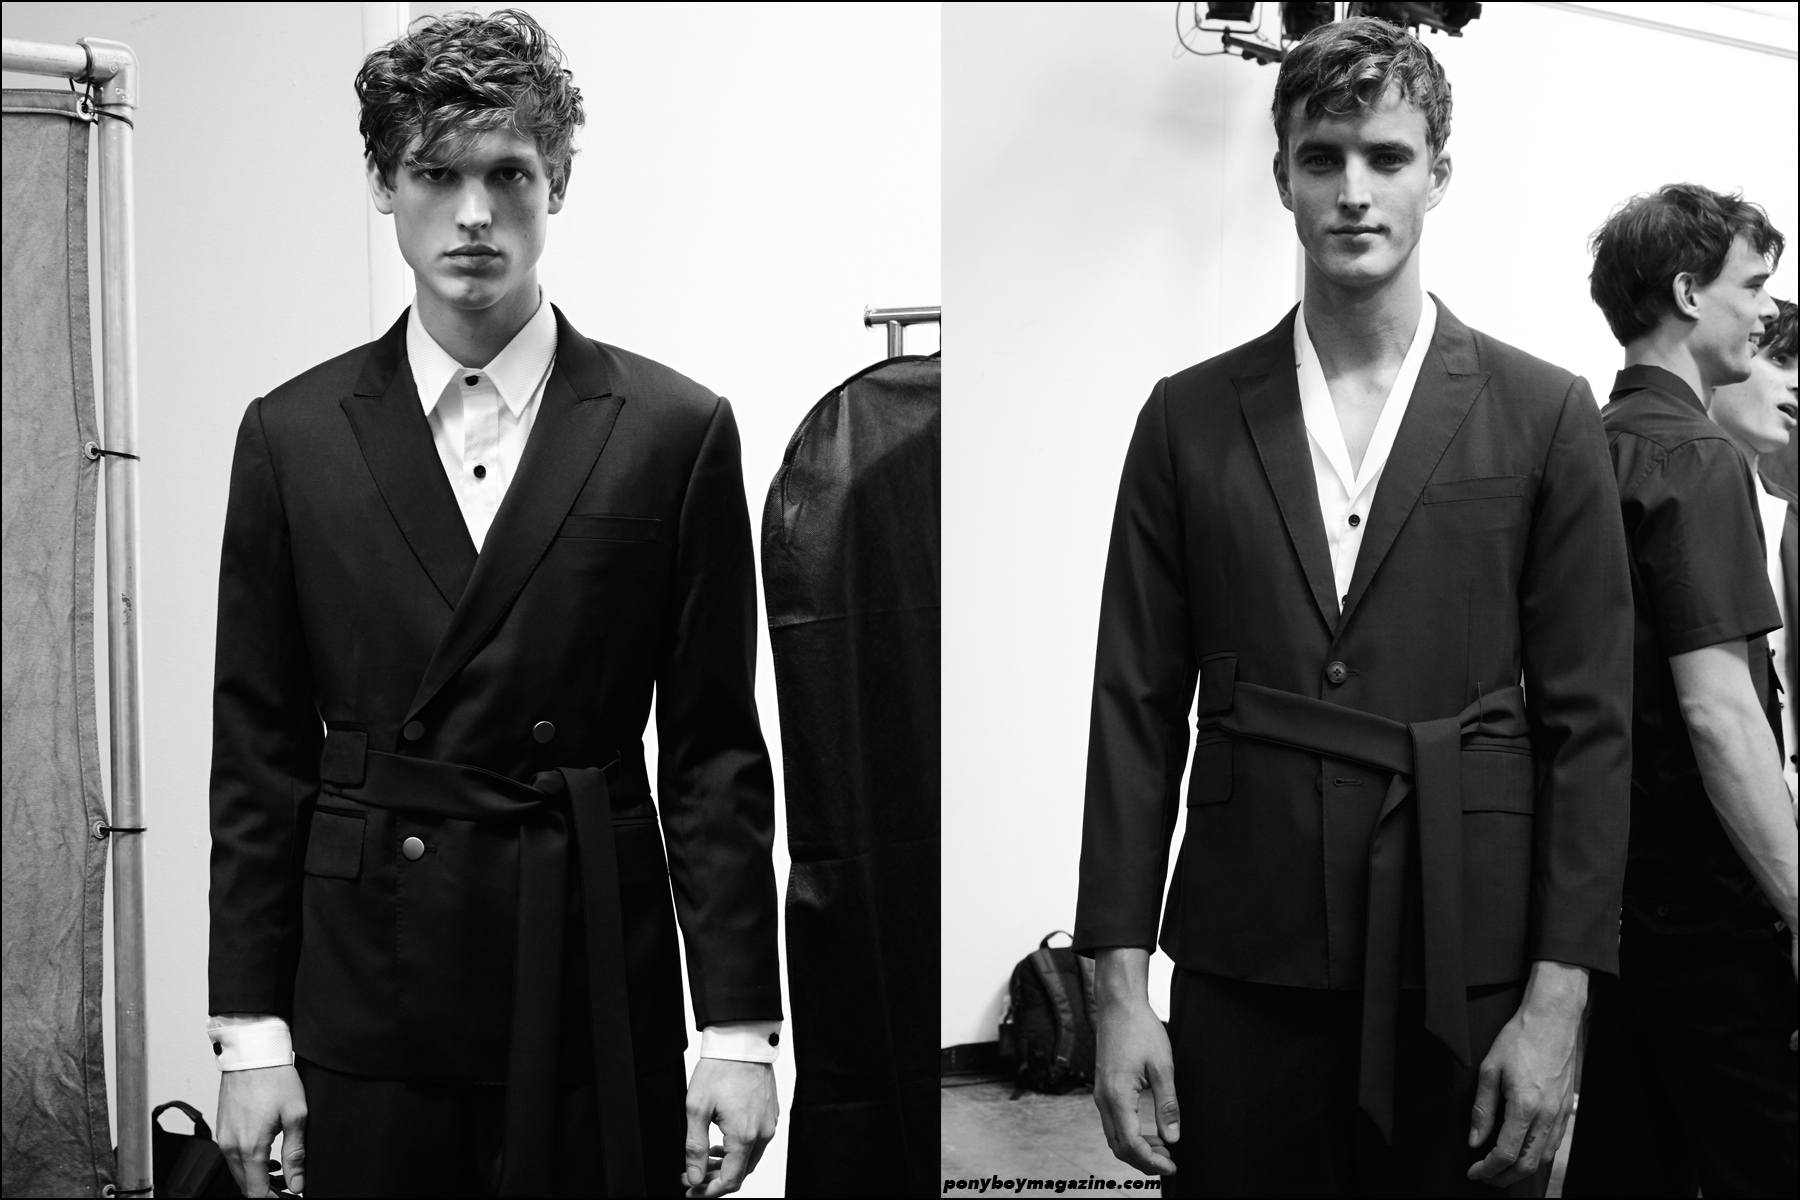 Models Alex Treutel and James Smith, photographed backstage at Carlos Campos Spring/Summer 2016 presentation at Industria Studios New York. Photographs by Alexander Thompson for Ponyboy magazine NY.